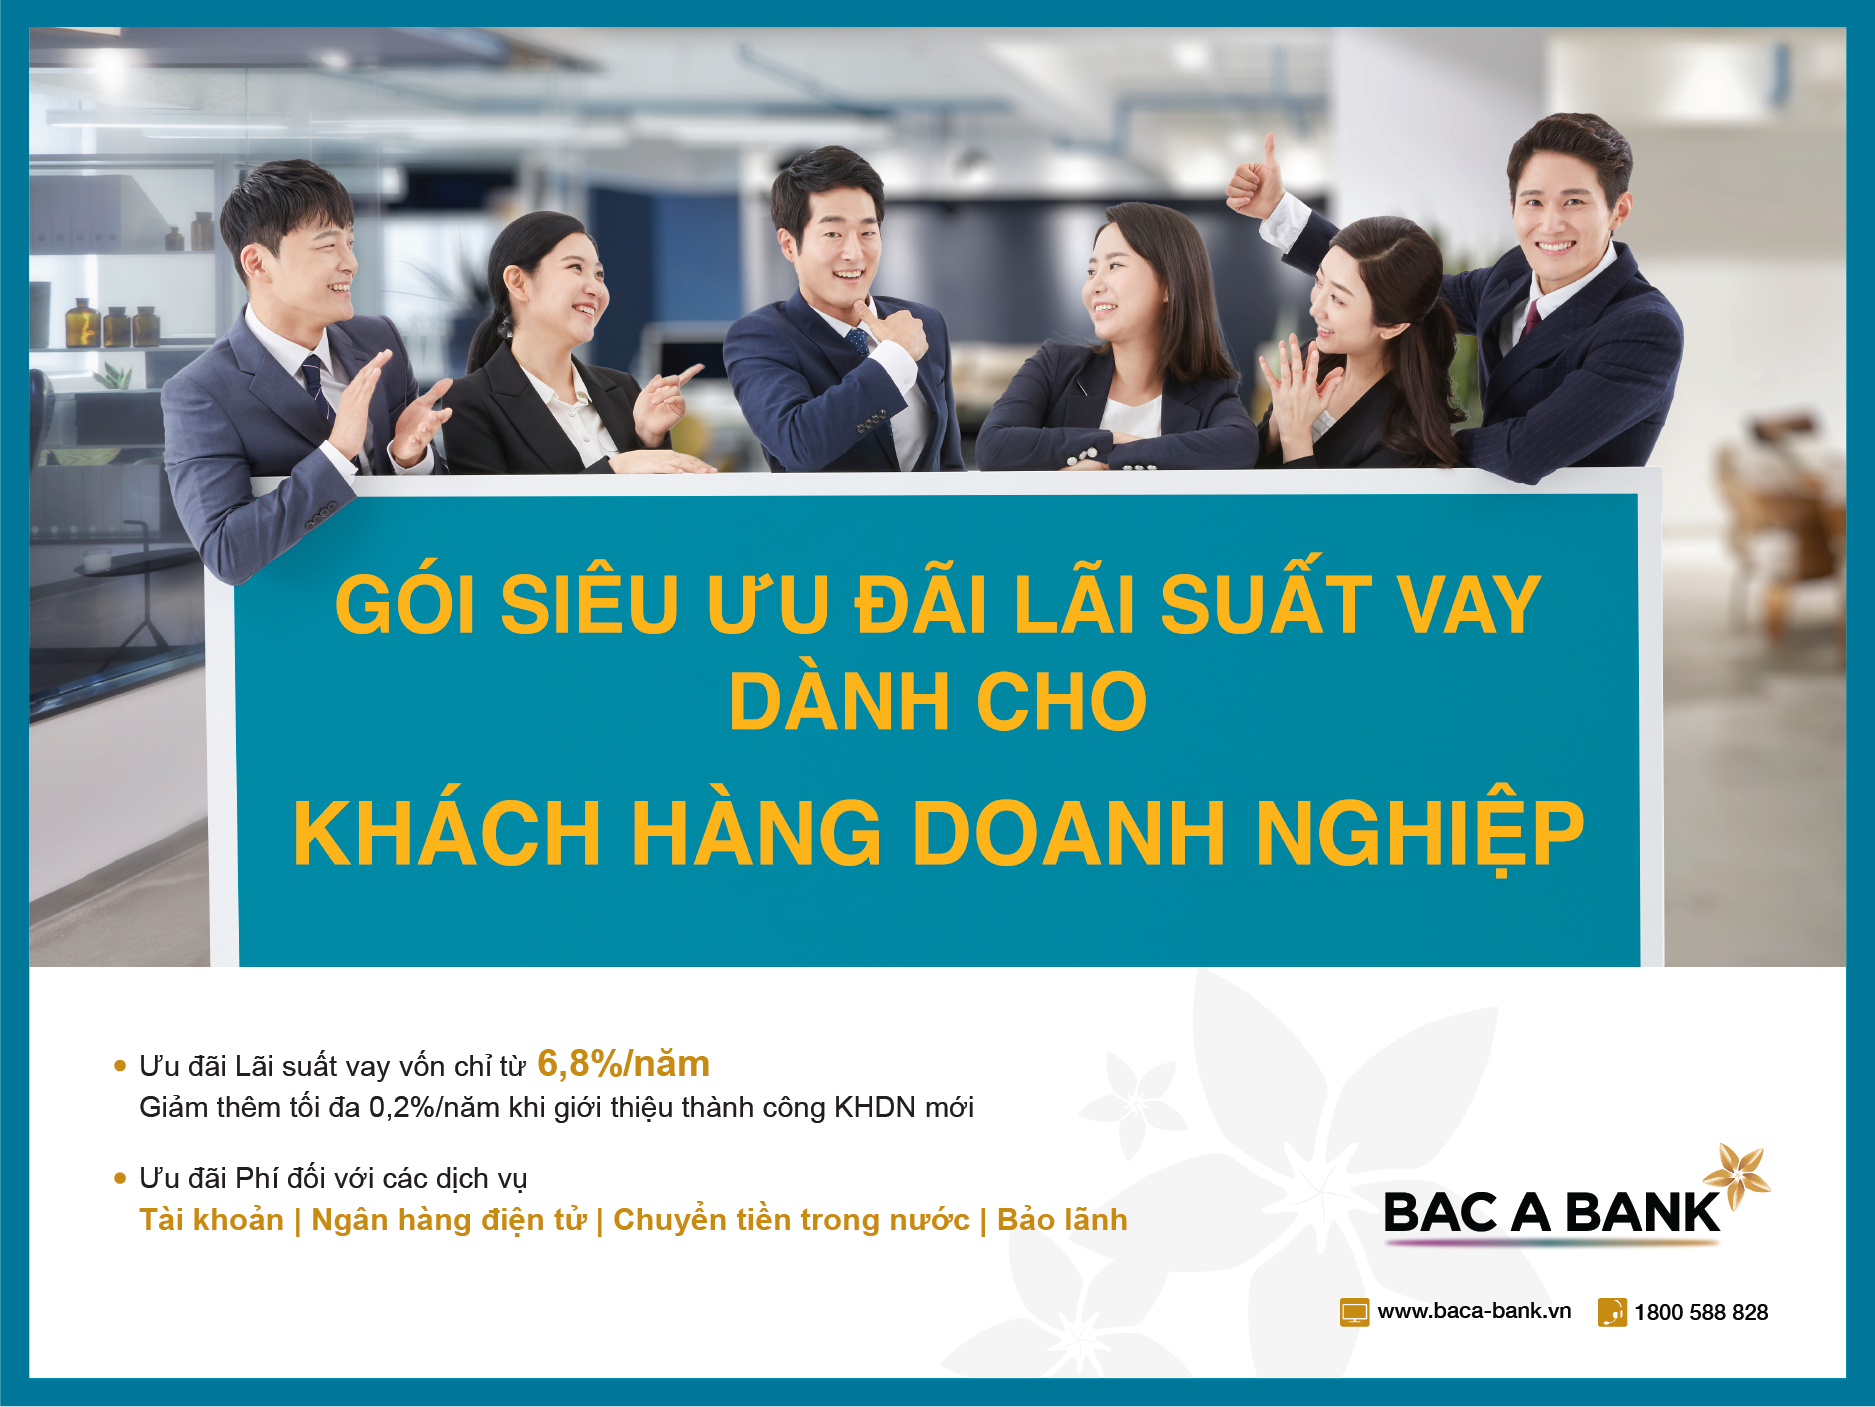 Enterprises to enjoy preferential rates with loans from BAC A BANK